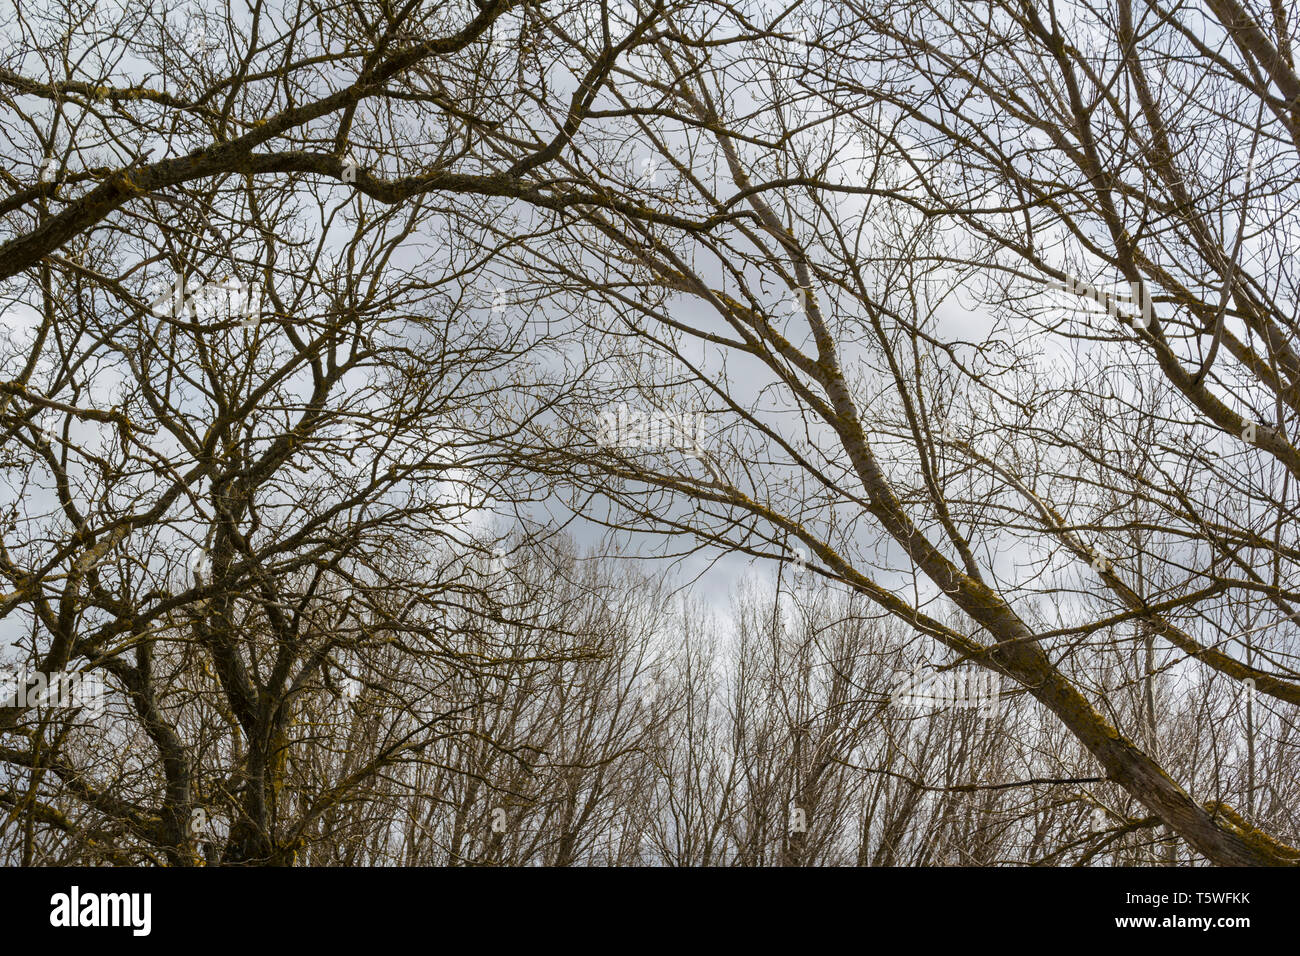 Winter trees - Stock Image